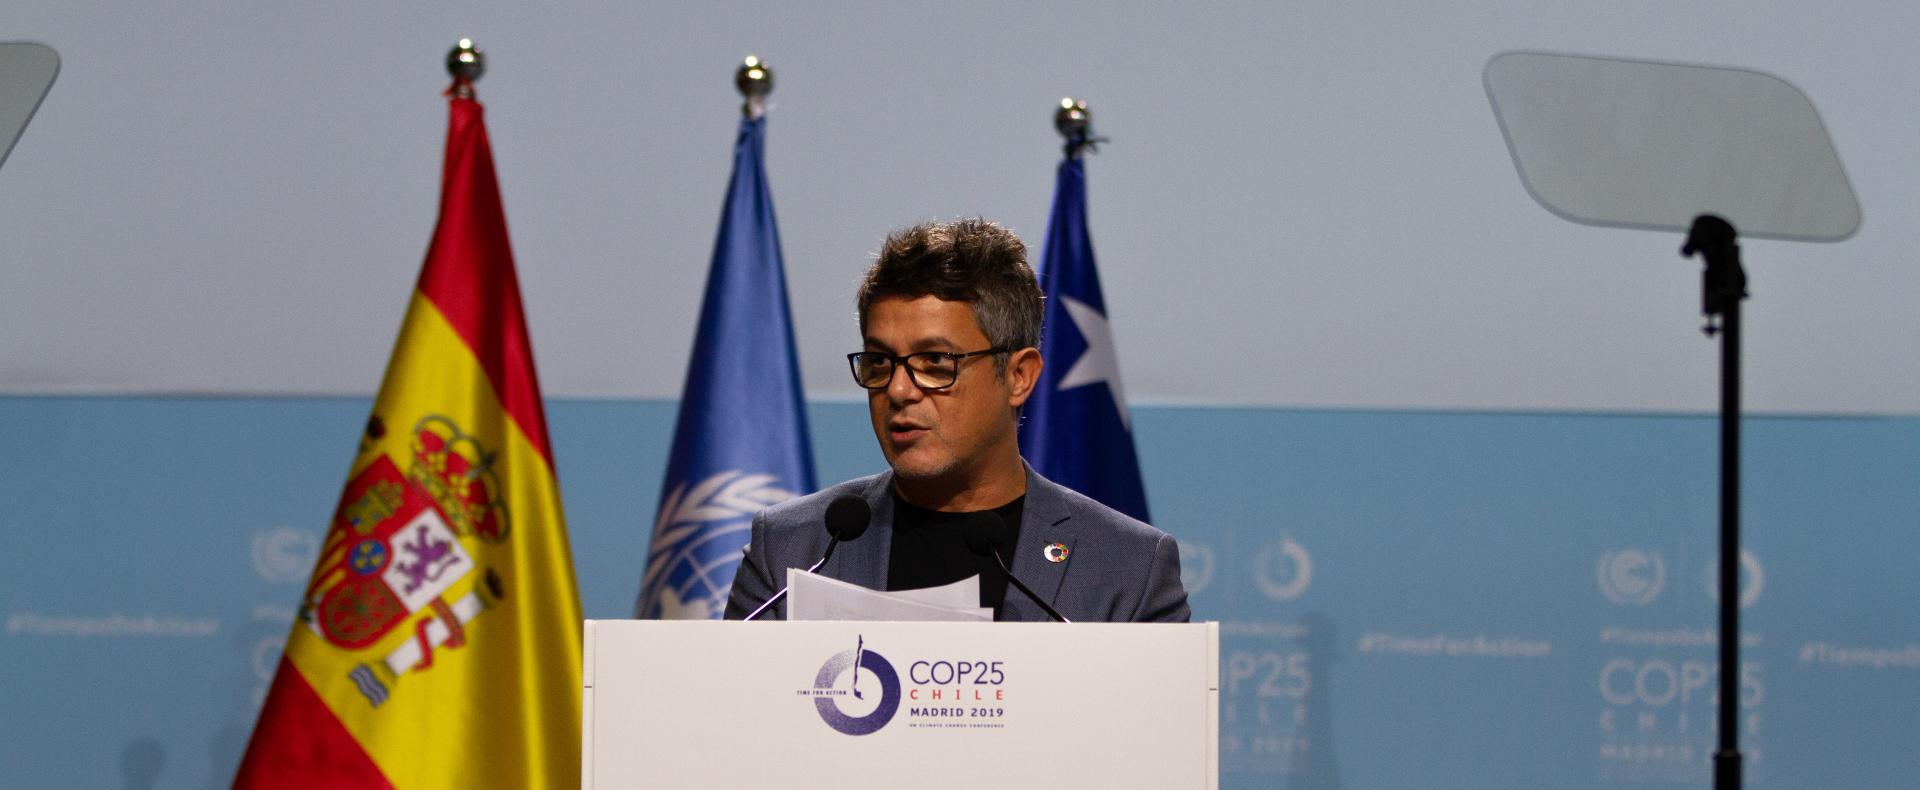 Alejandro Sanz at opening of COP25 high level segment